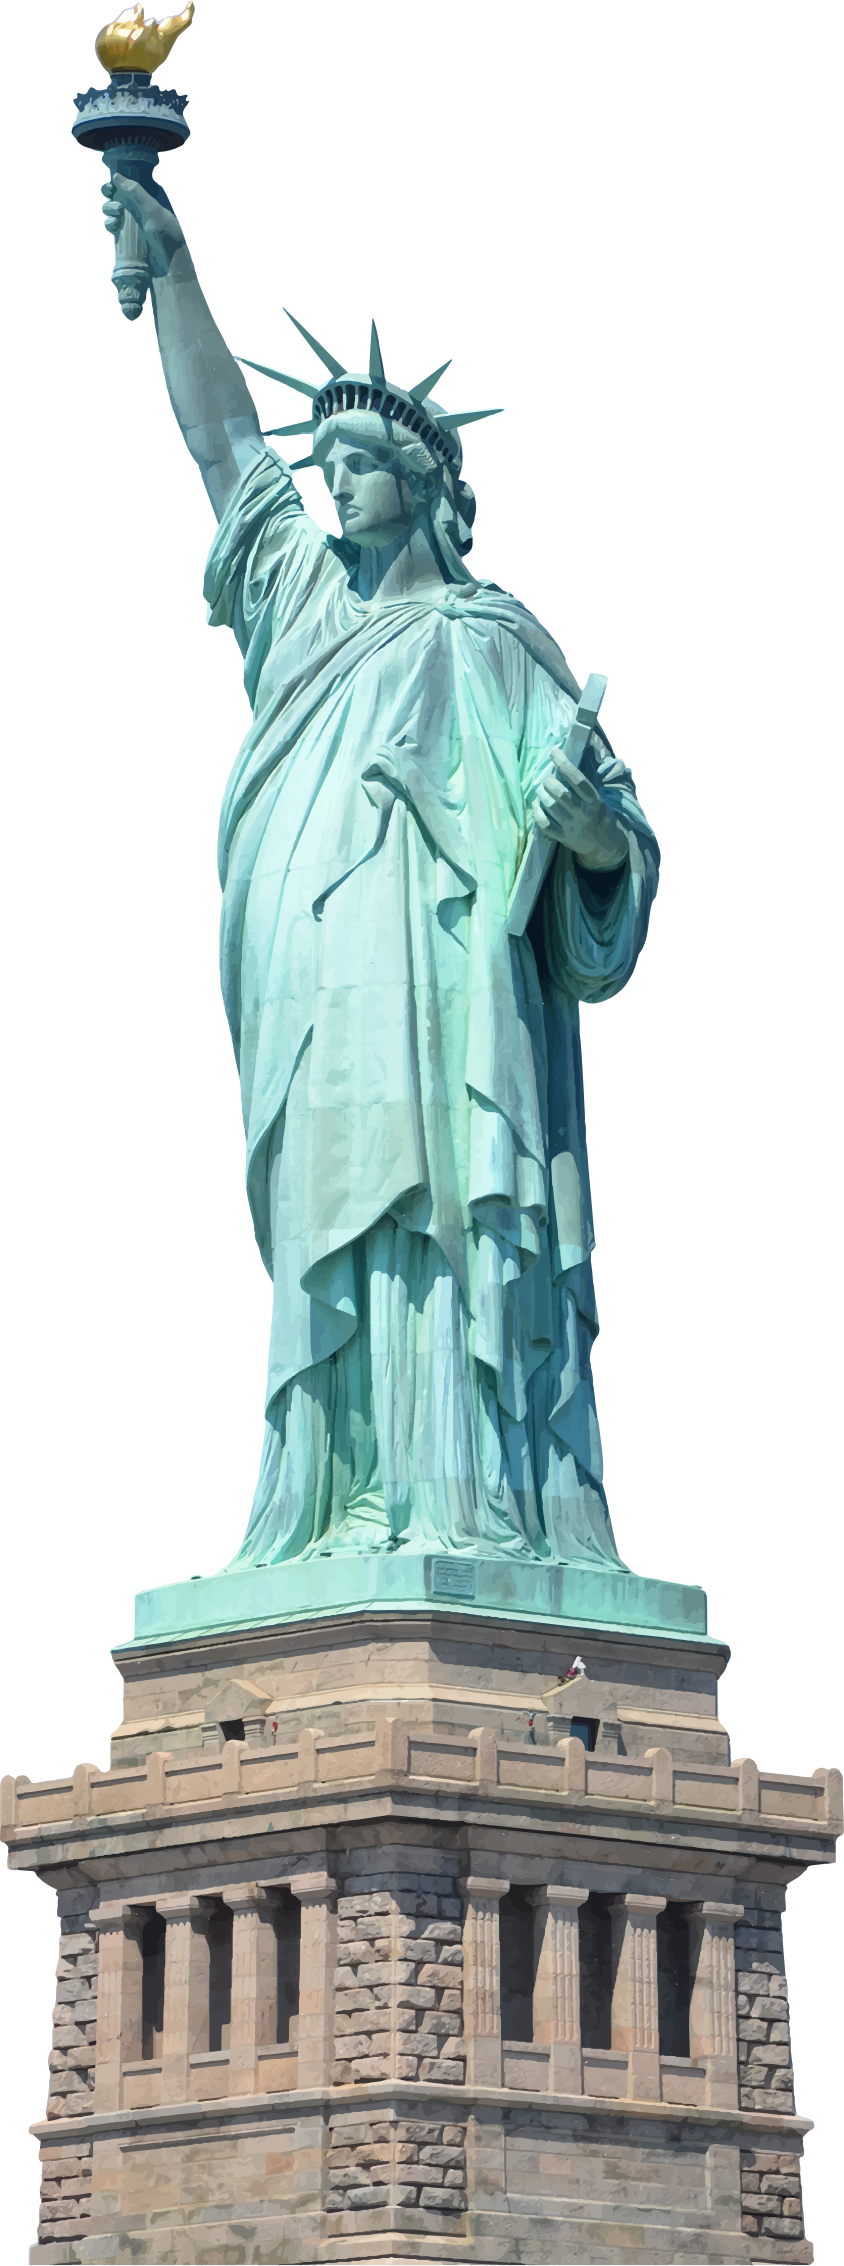 Statue Of Liberty File PNG Image